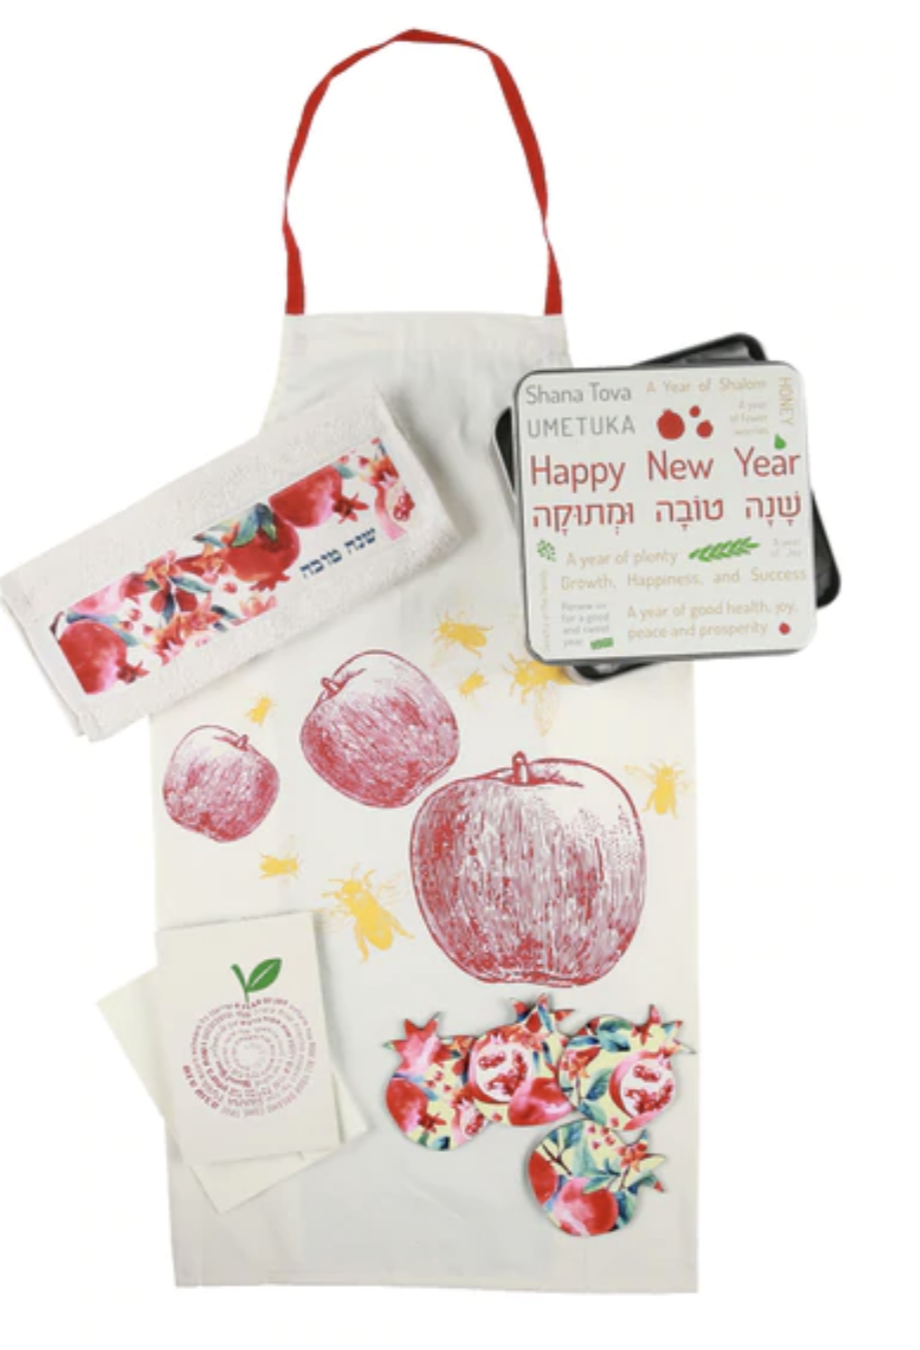 Rosh Hashanah Apples and Bees Gift box | Barbara Shaw Gifts